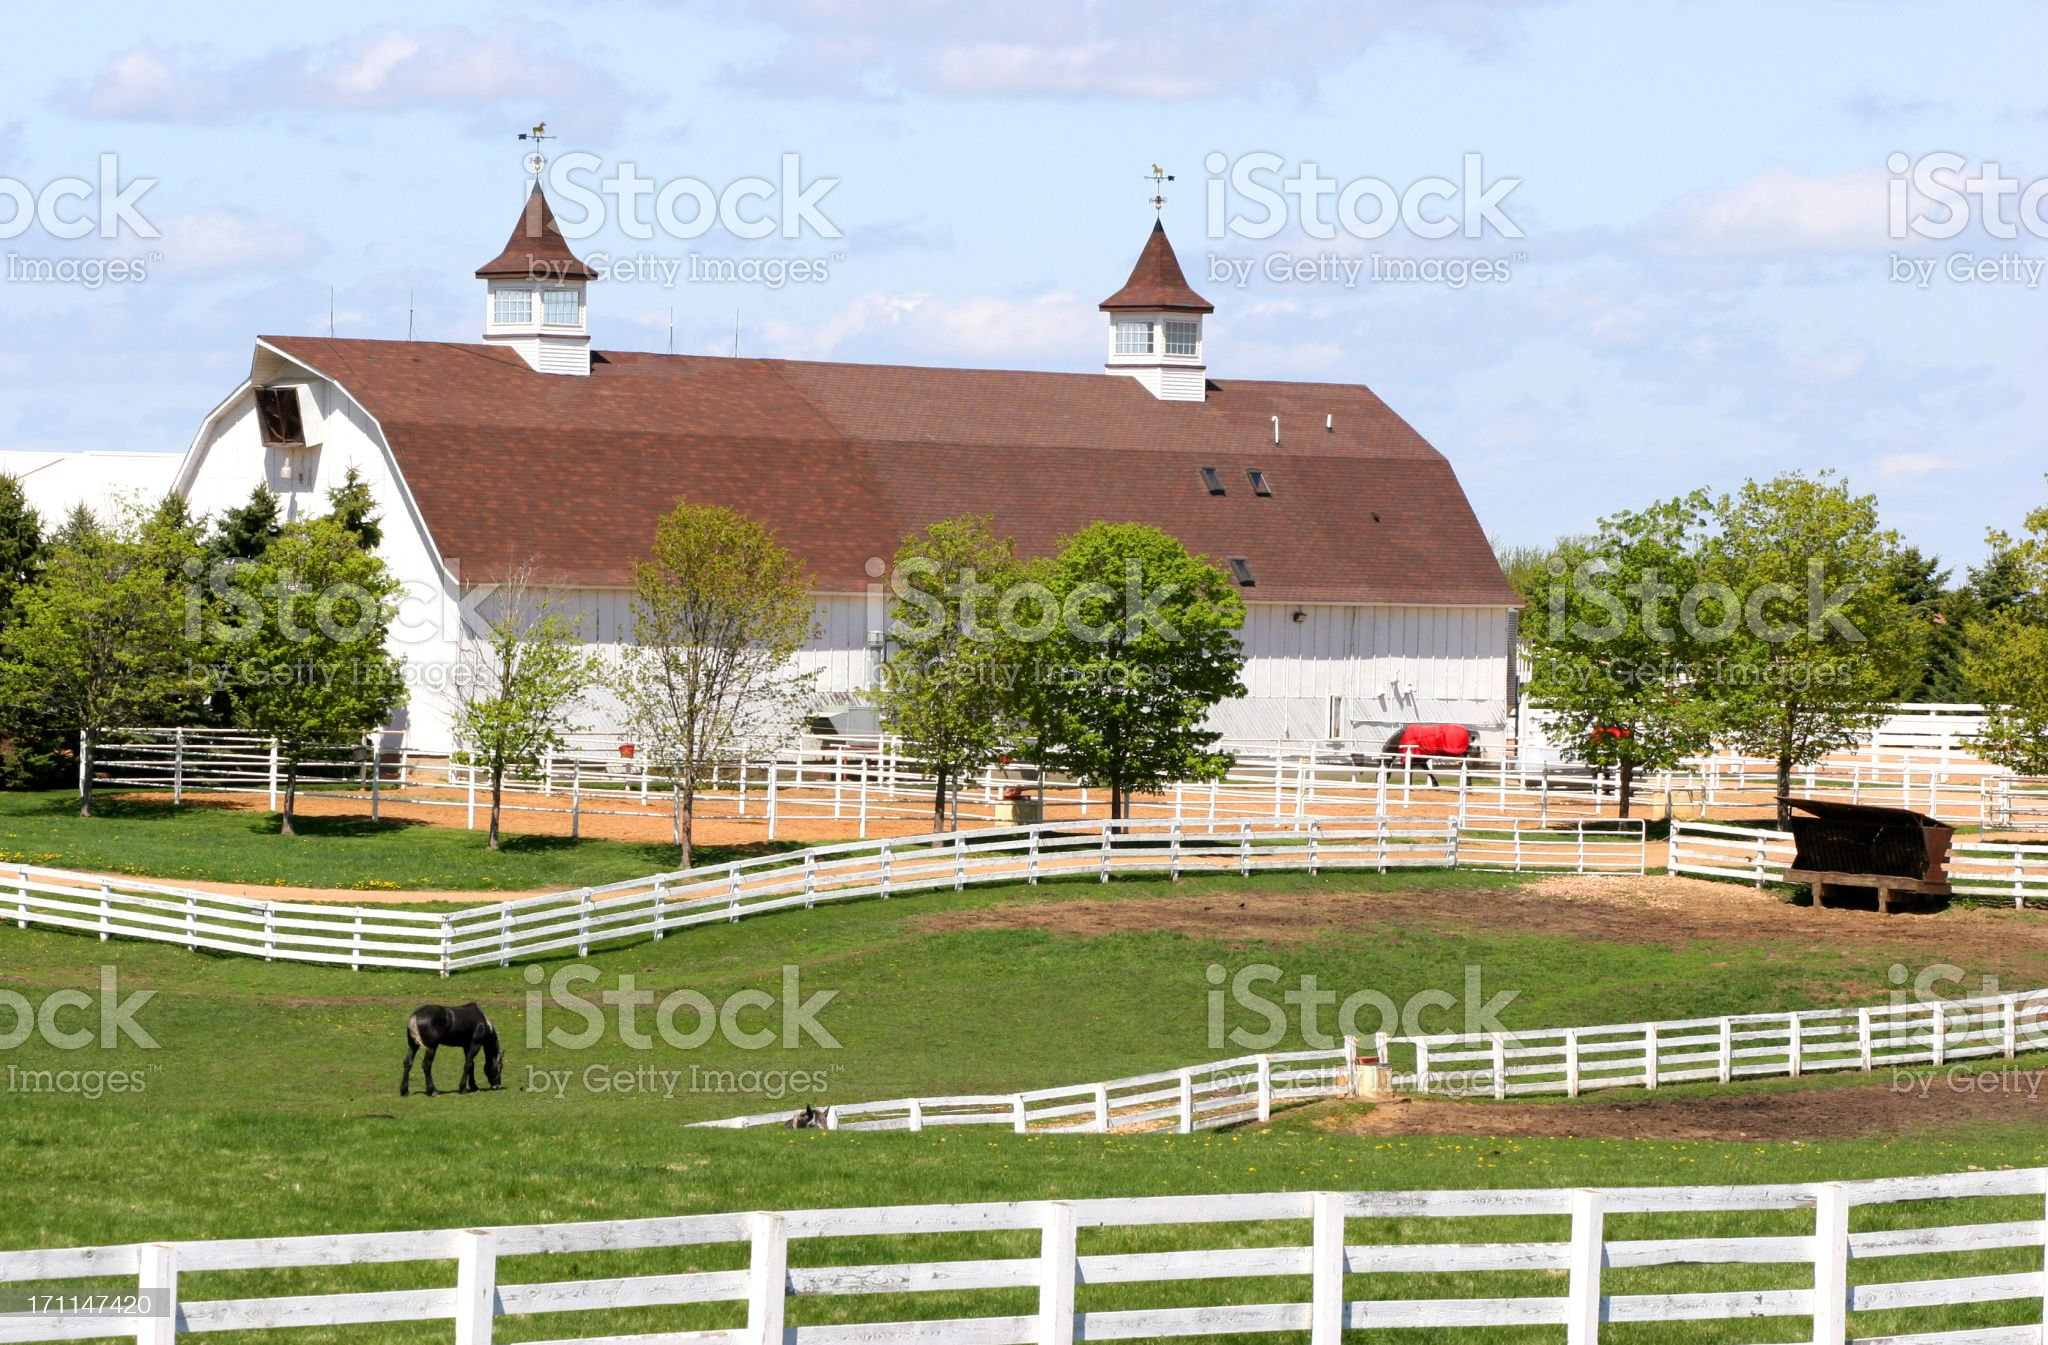 Ranch royalty-free stock photo